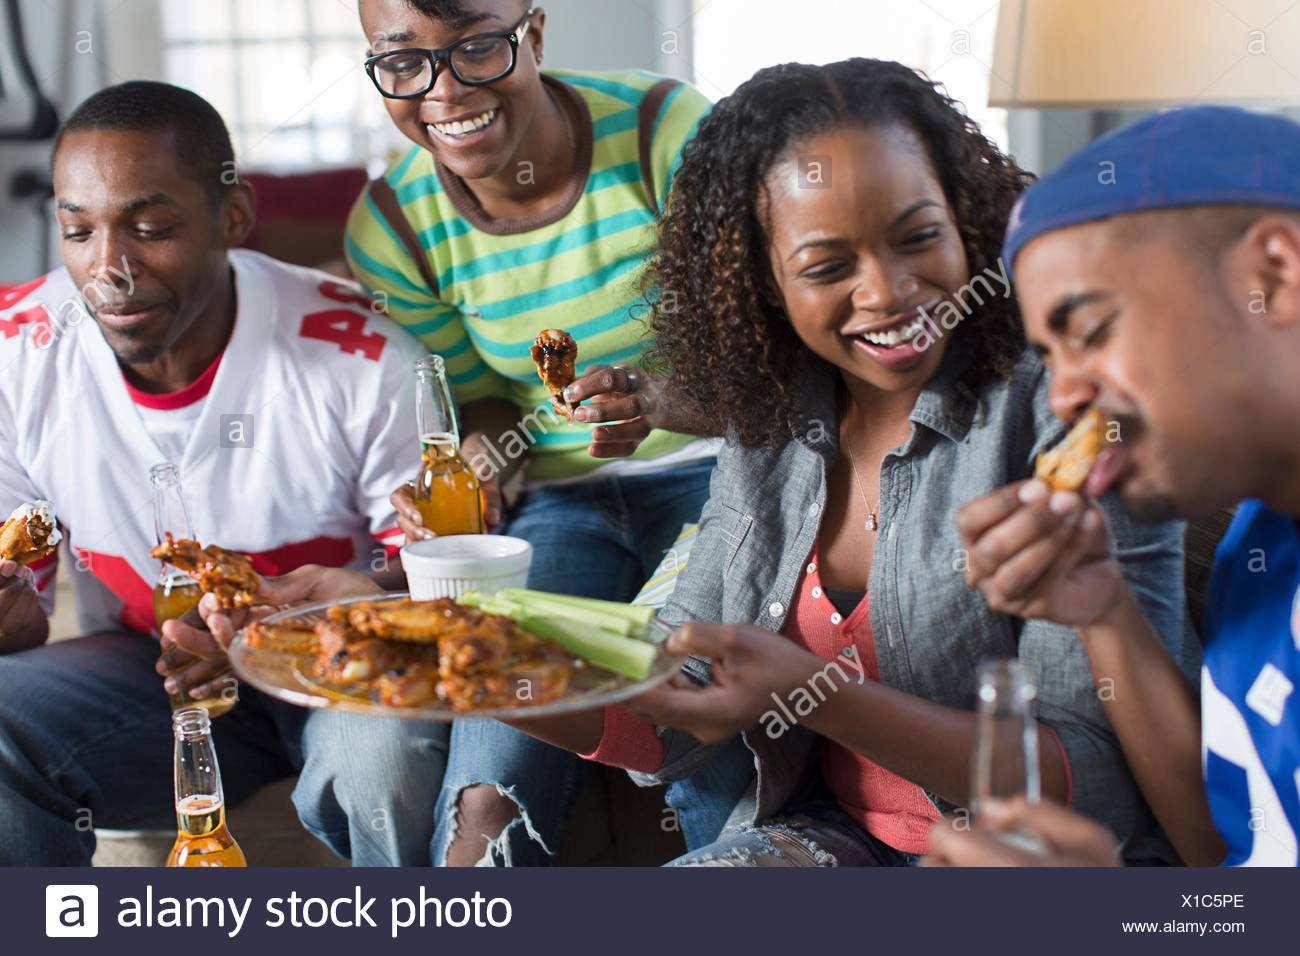 Group of adult friends eating takeaway on living room sofa - Stock Image